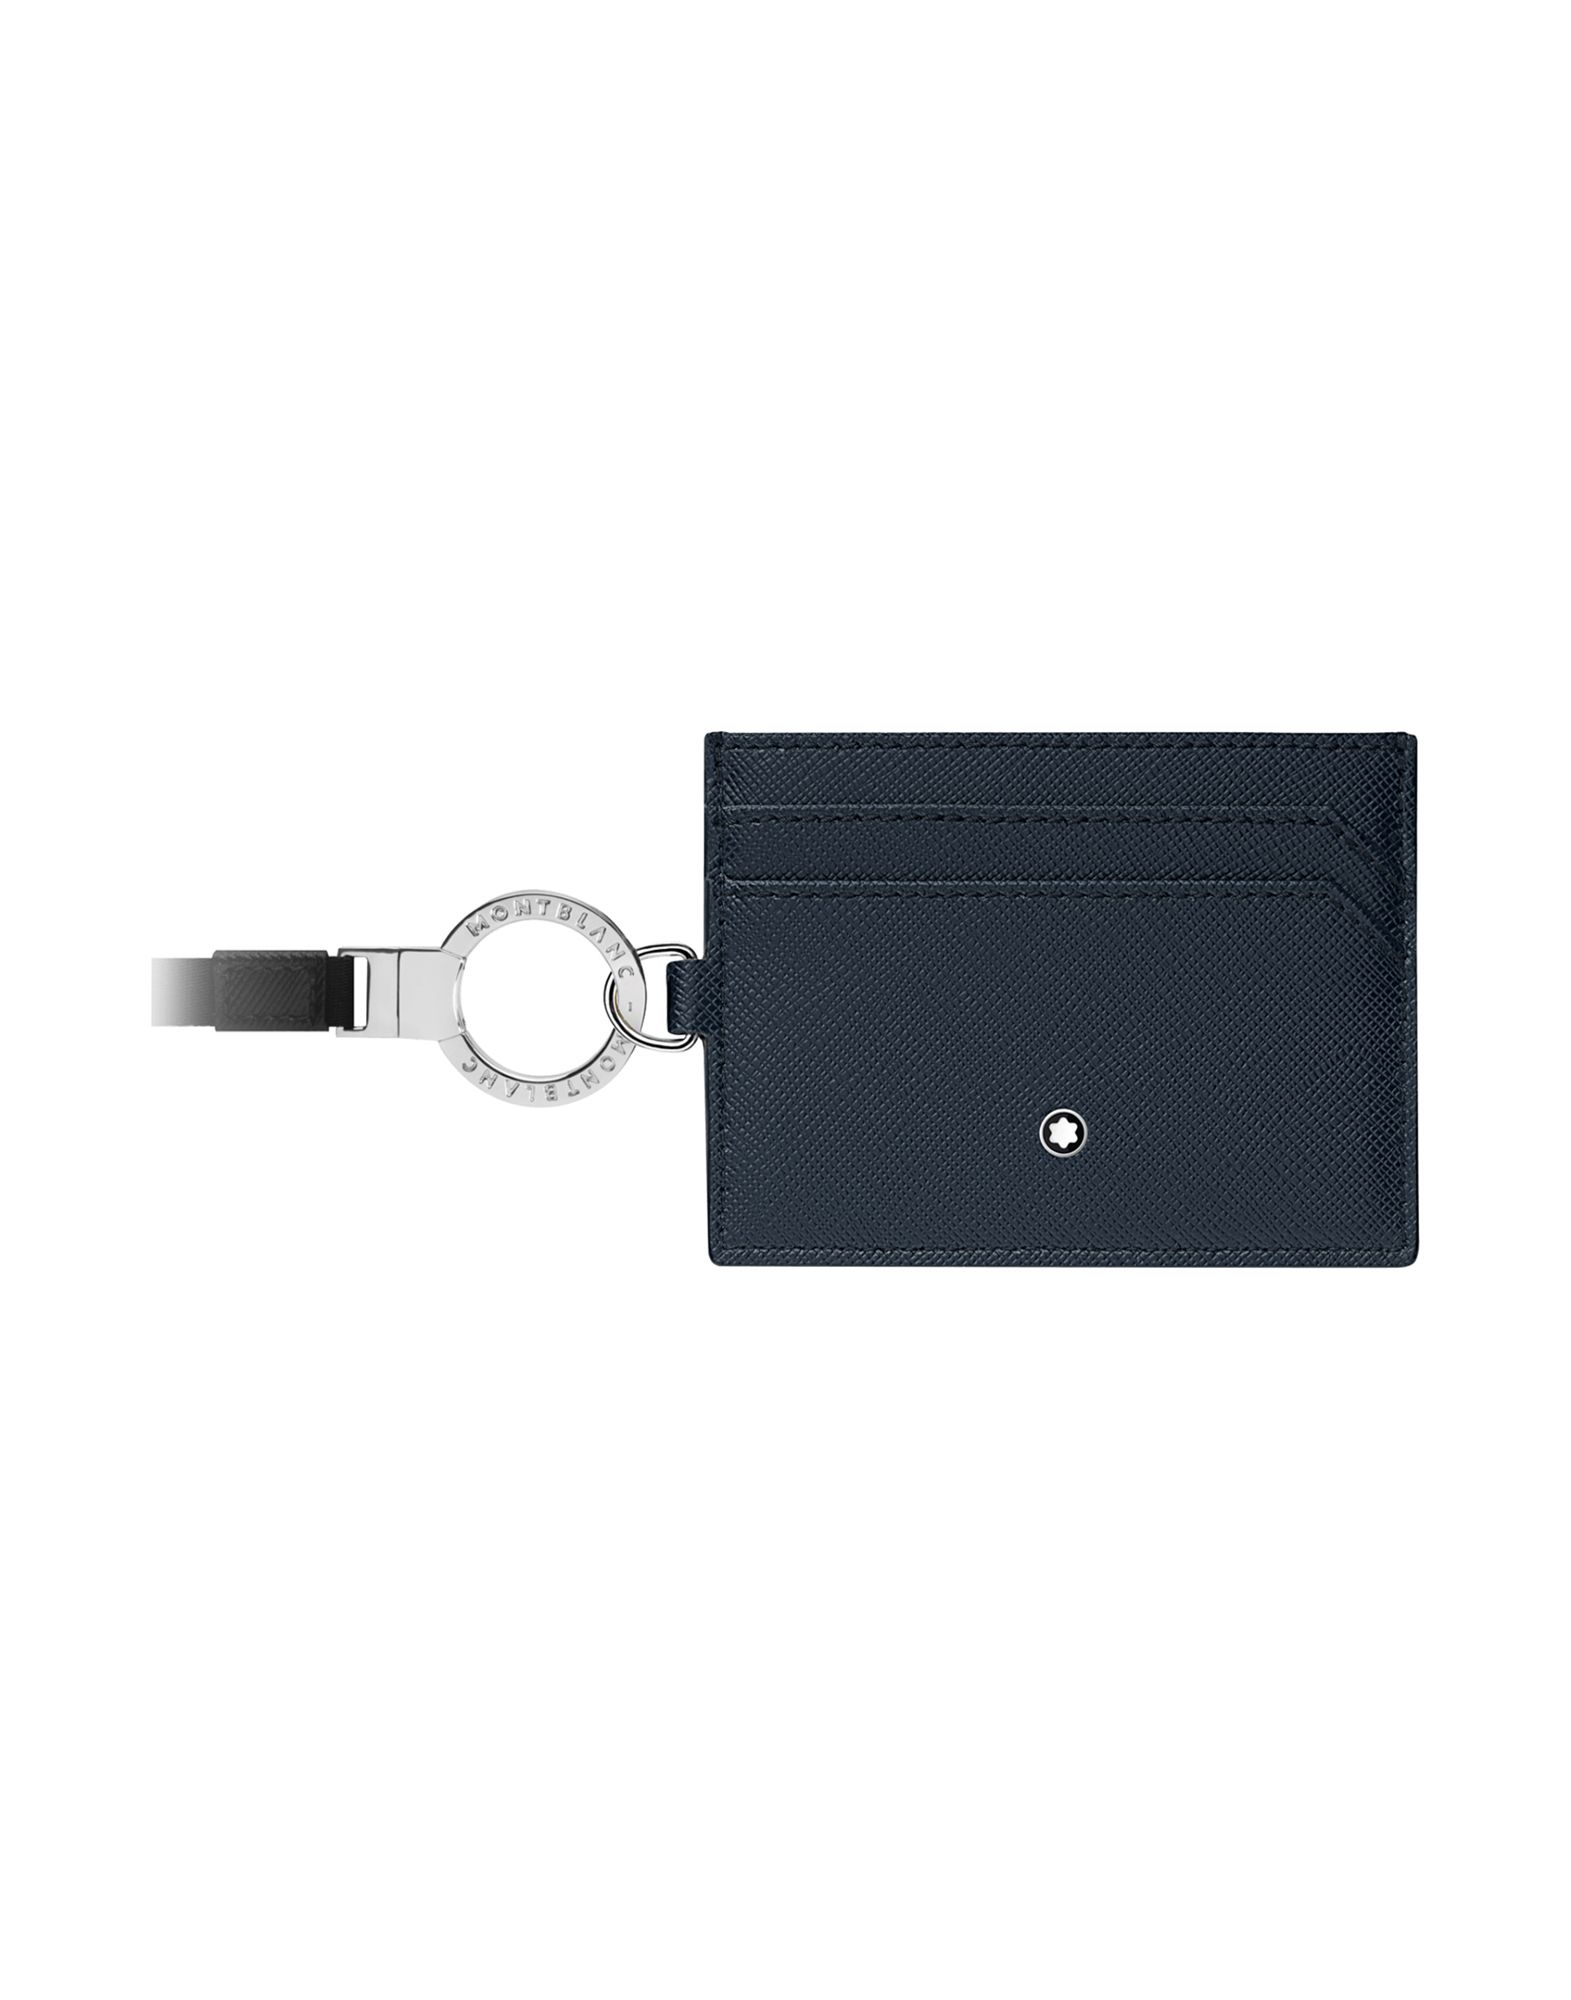 Paul Smith Small Leather Goods - Key rings su YOOX.COM hd2Xwt